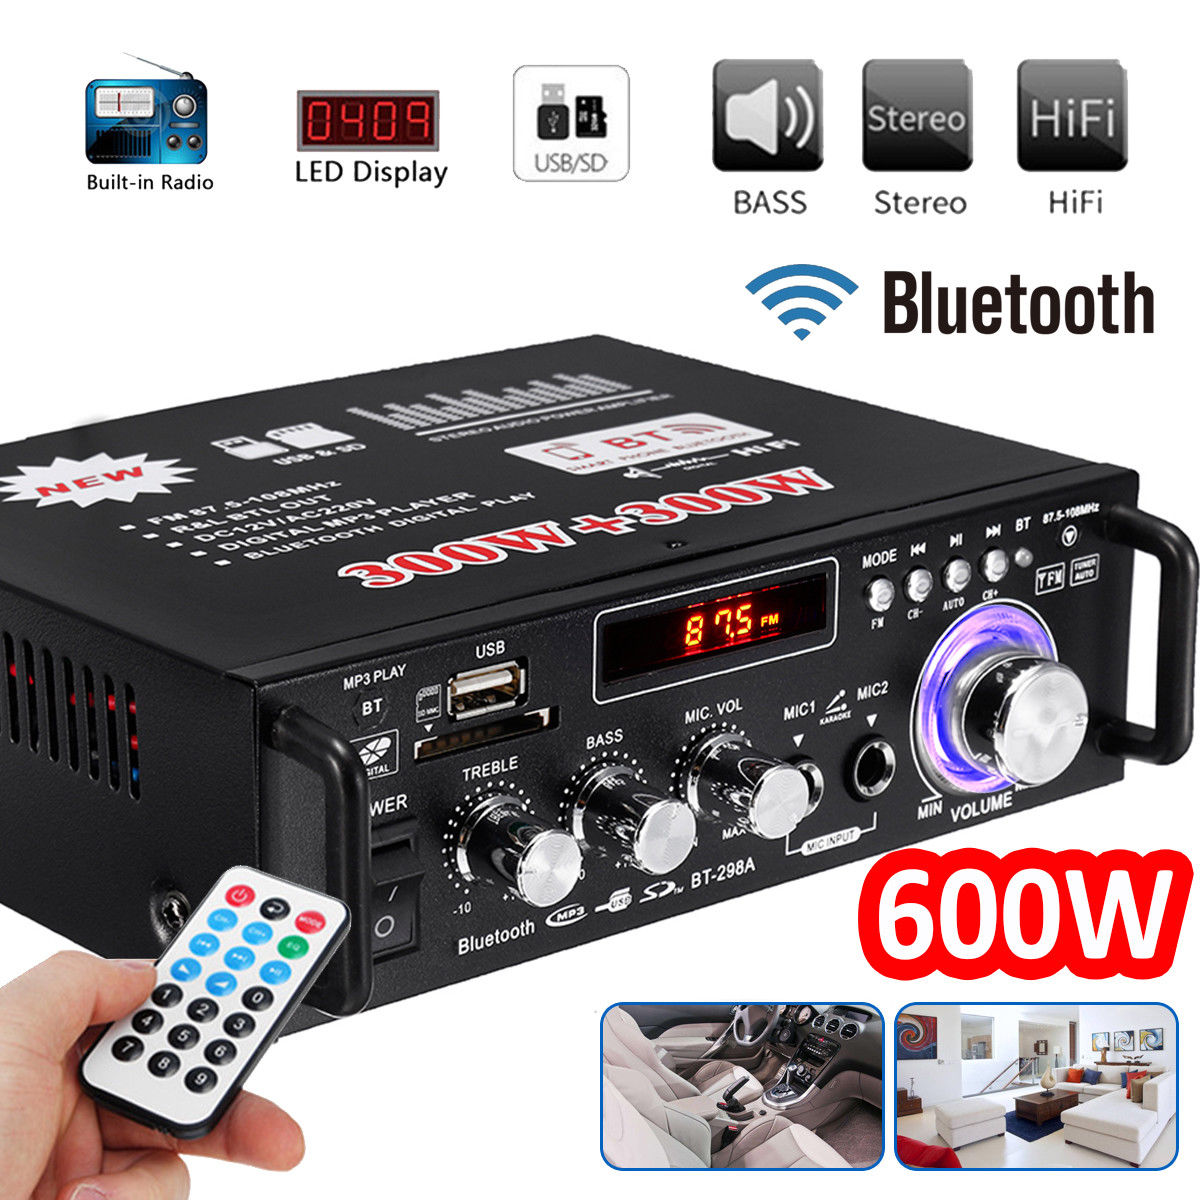 600W 220V/110V Amplifiers Audio Amplifier bluetooth Subwoofer Mini Amplifier Home Theater Sound System Equalizer